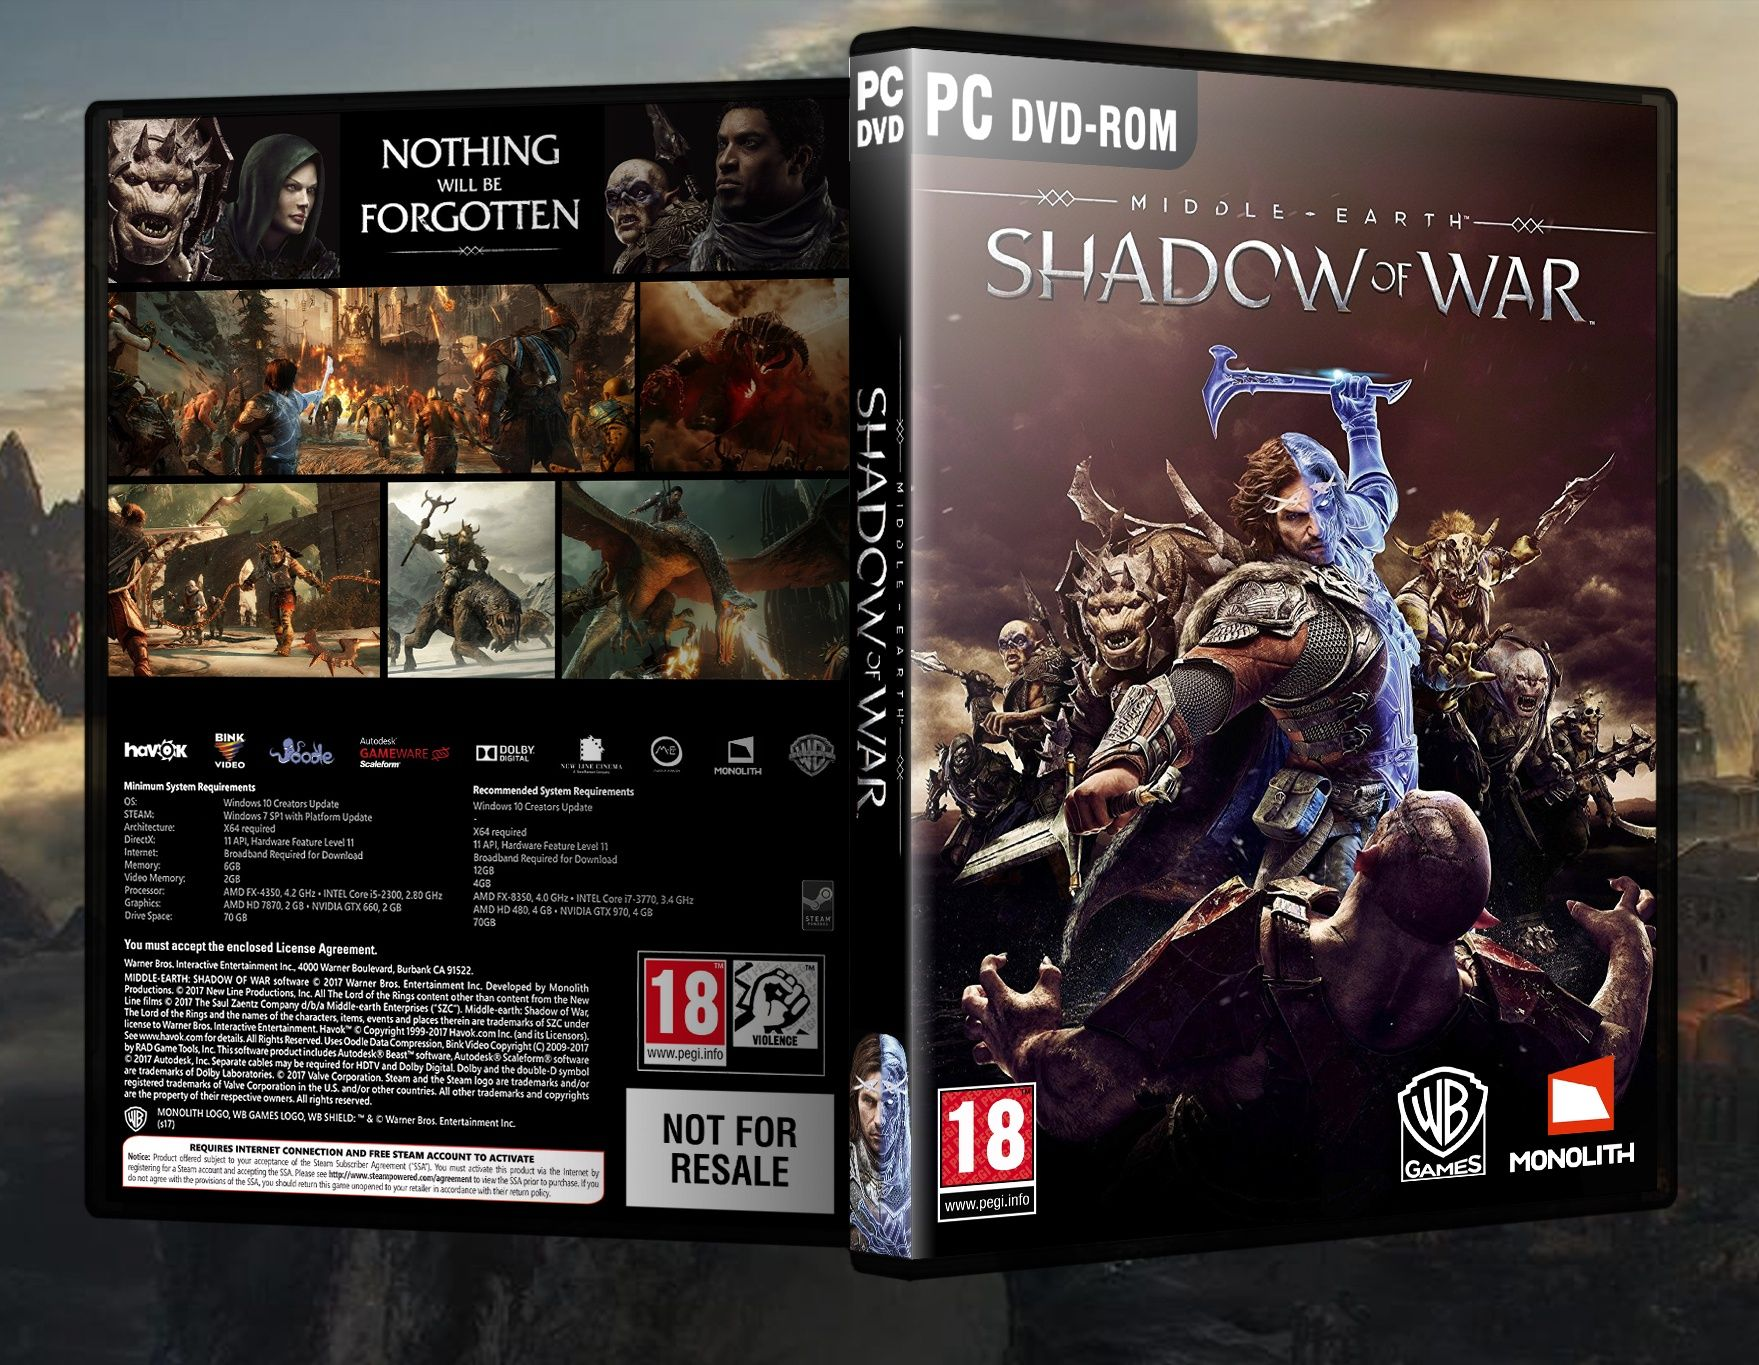 Middle-earth: Shadow of War box art cover | PC DVD Covers